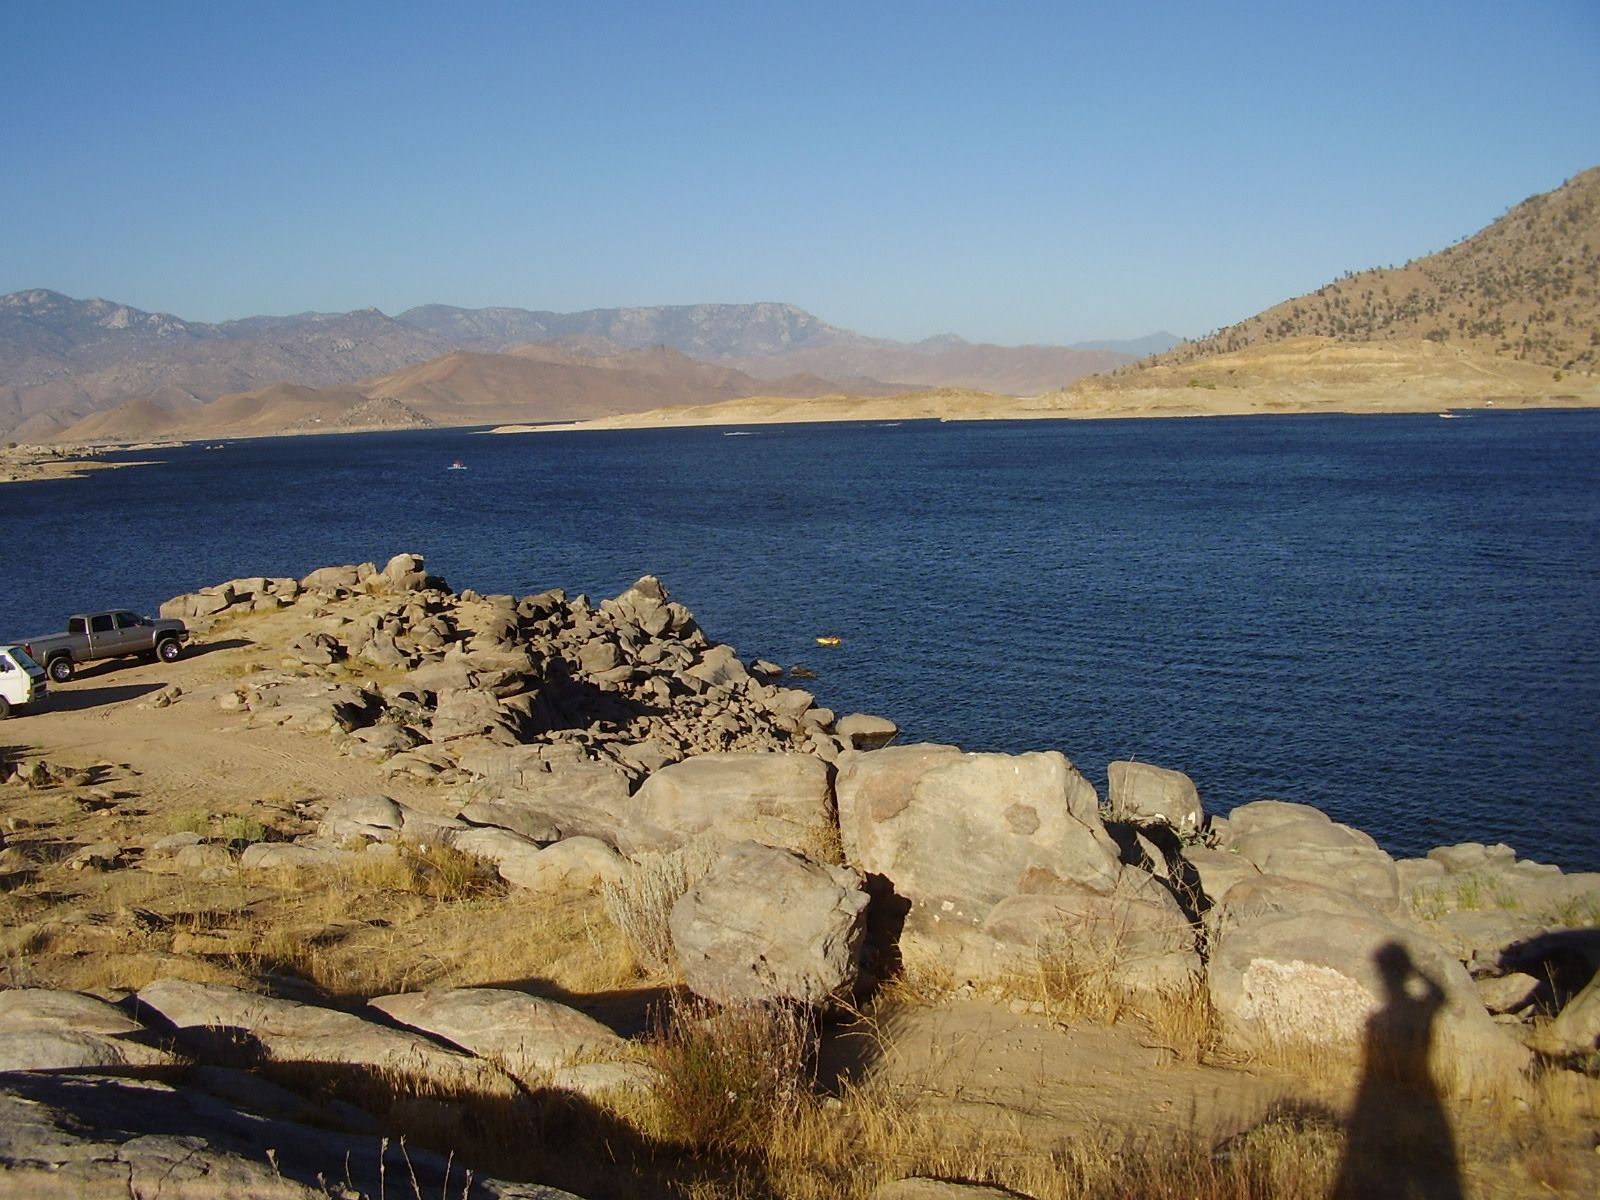 lake isabella The latest tweets from lake isabella (@lake_isabella) california's best kept secret with many activities, including fishing, hiking, camping, windsurfing, or just relaxing, the lake itself has much to offer.